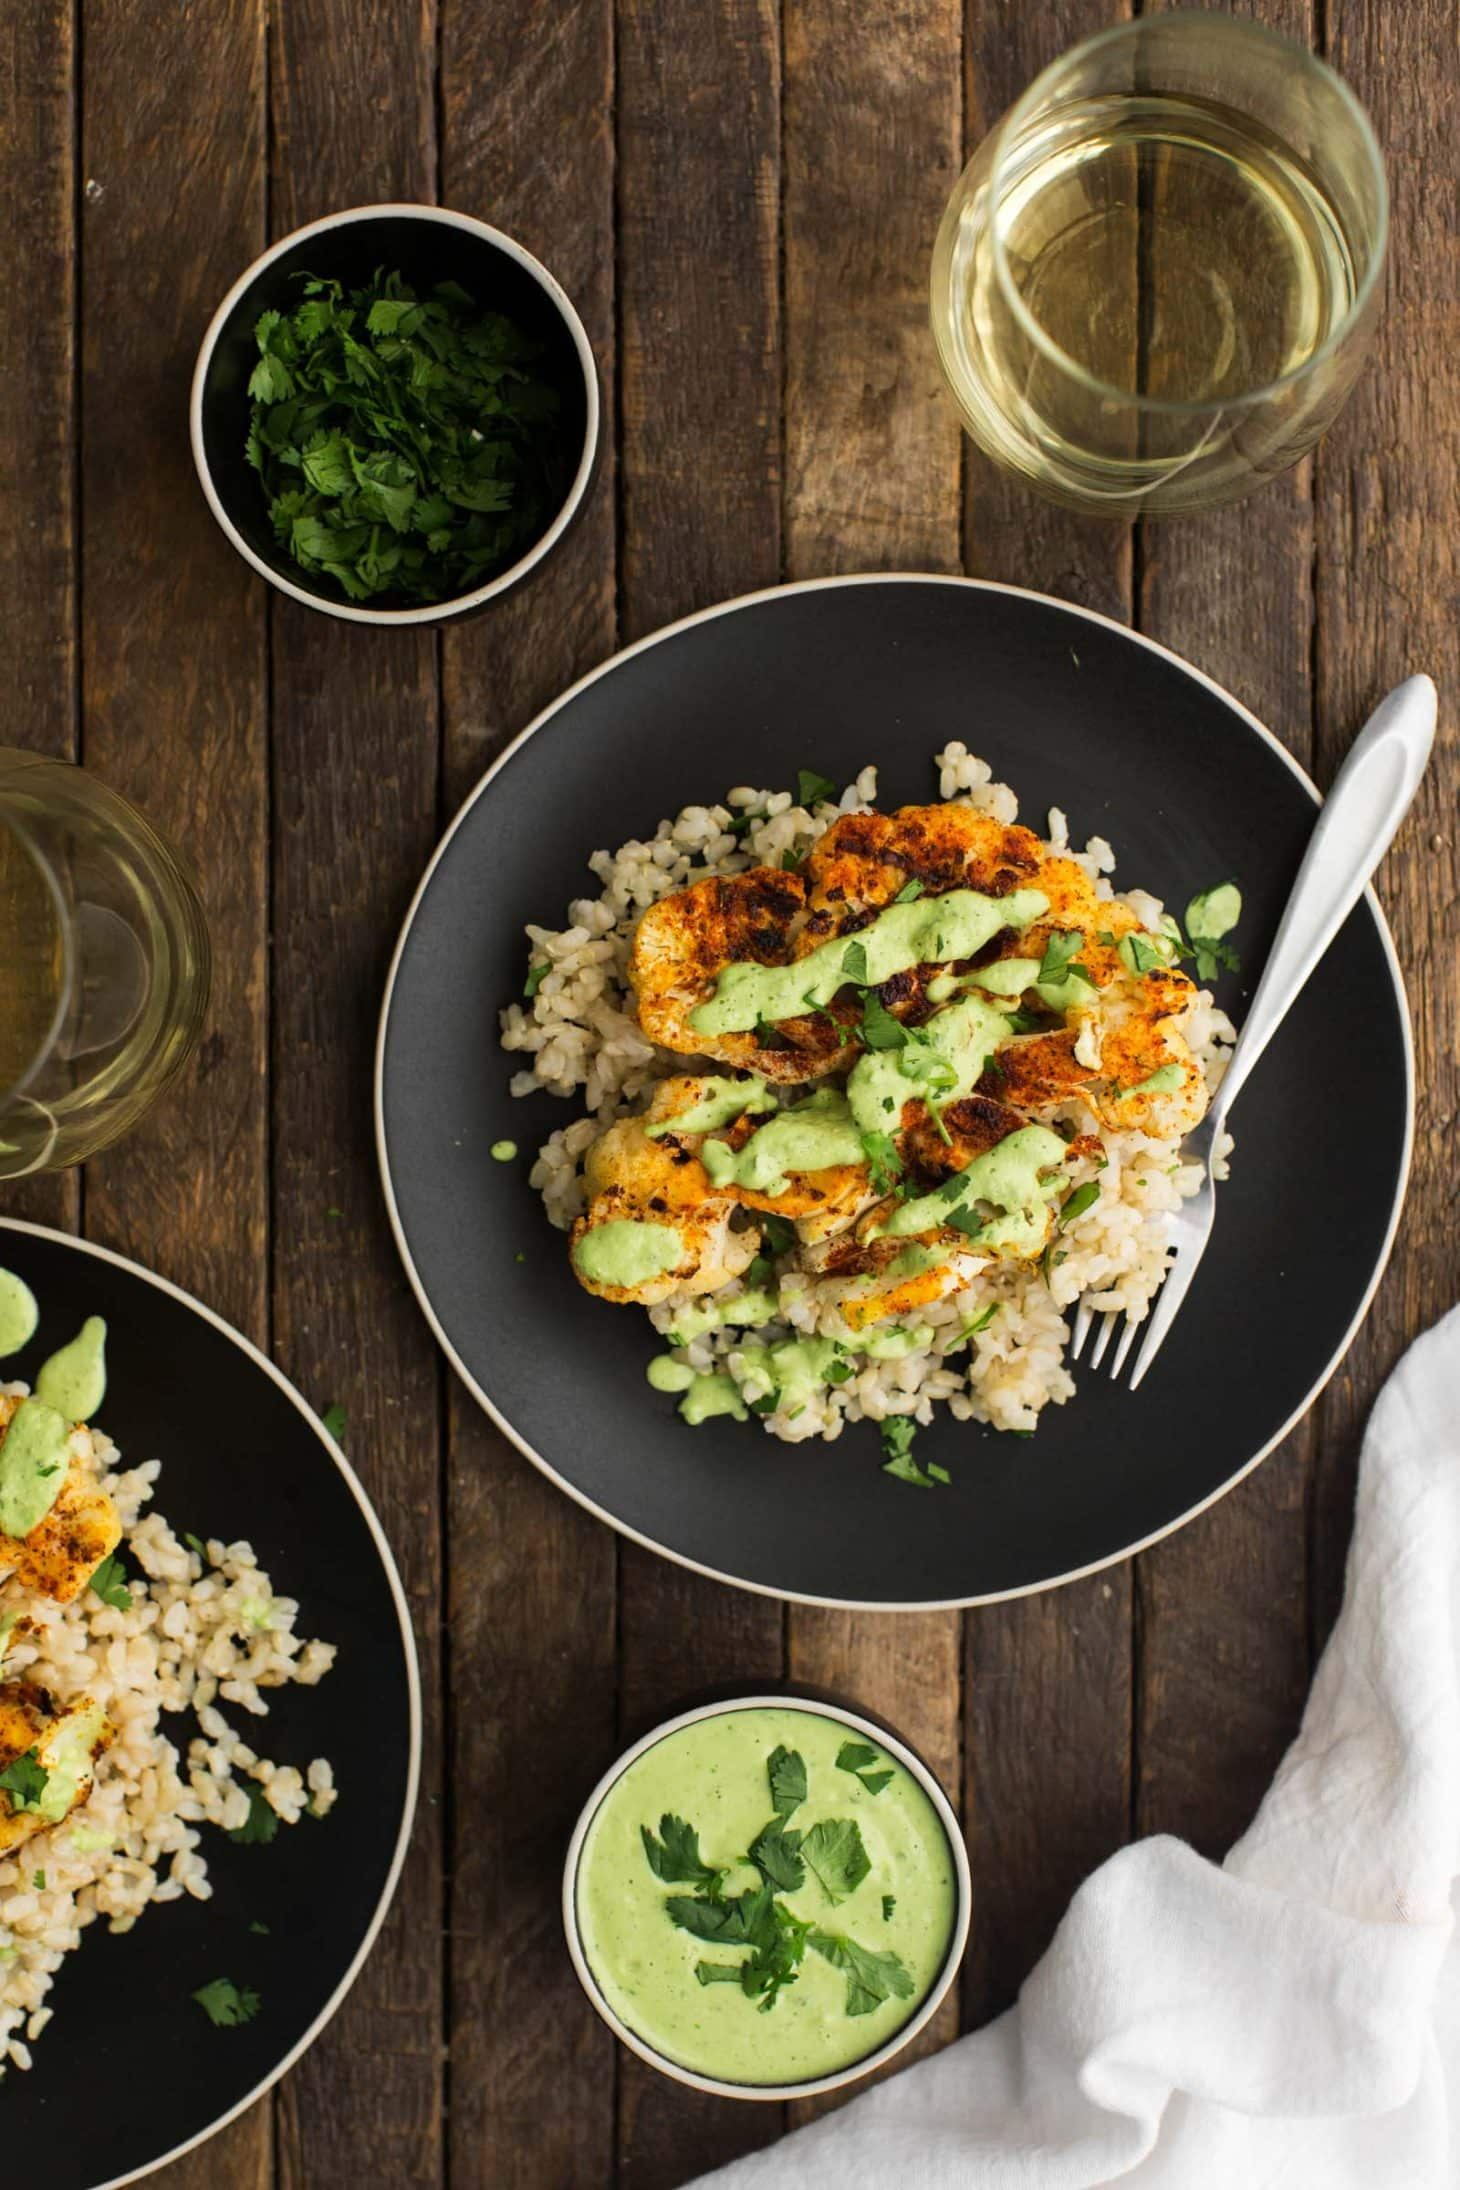 Cajun Cauliflower with Cilantro-Avocado Sauce and Brown Rice | @naturallyella